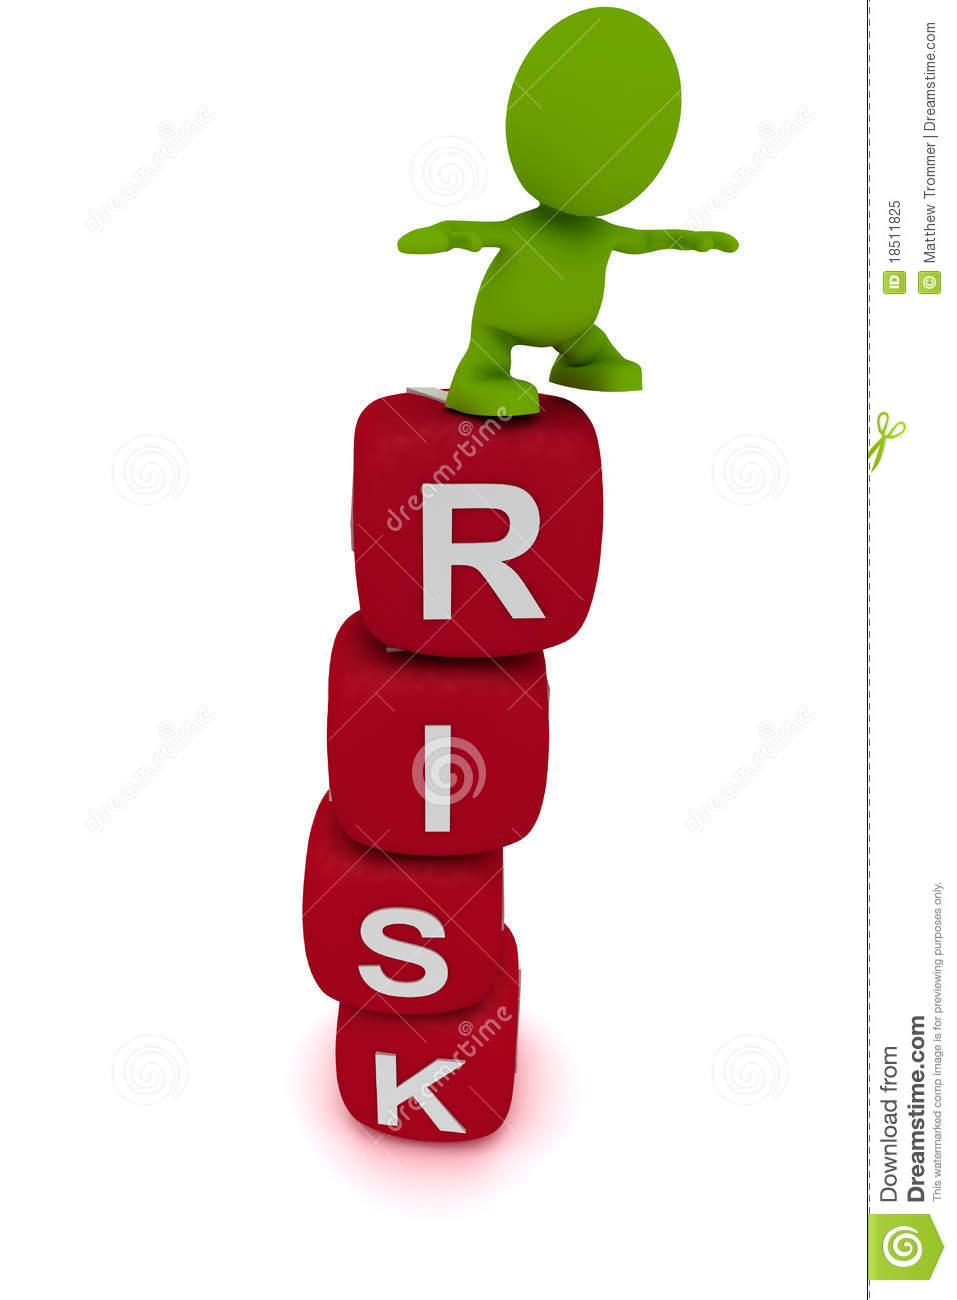 Risk Taker Clipart Clip Art Illustrations Images Graphics And PictureRisk Taker Clipart